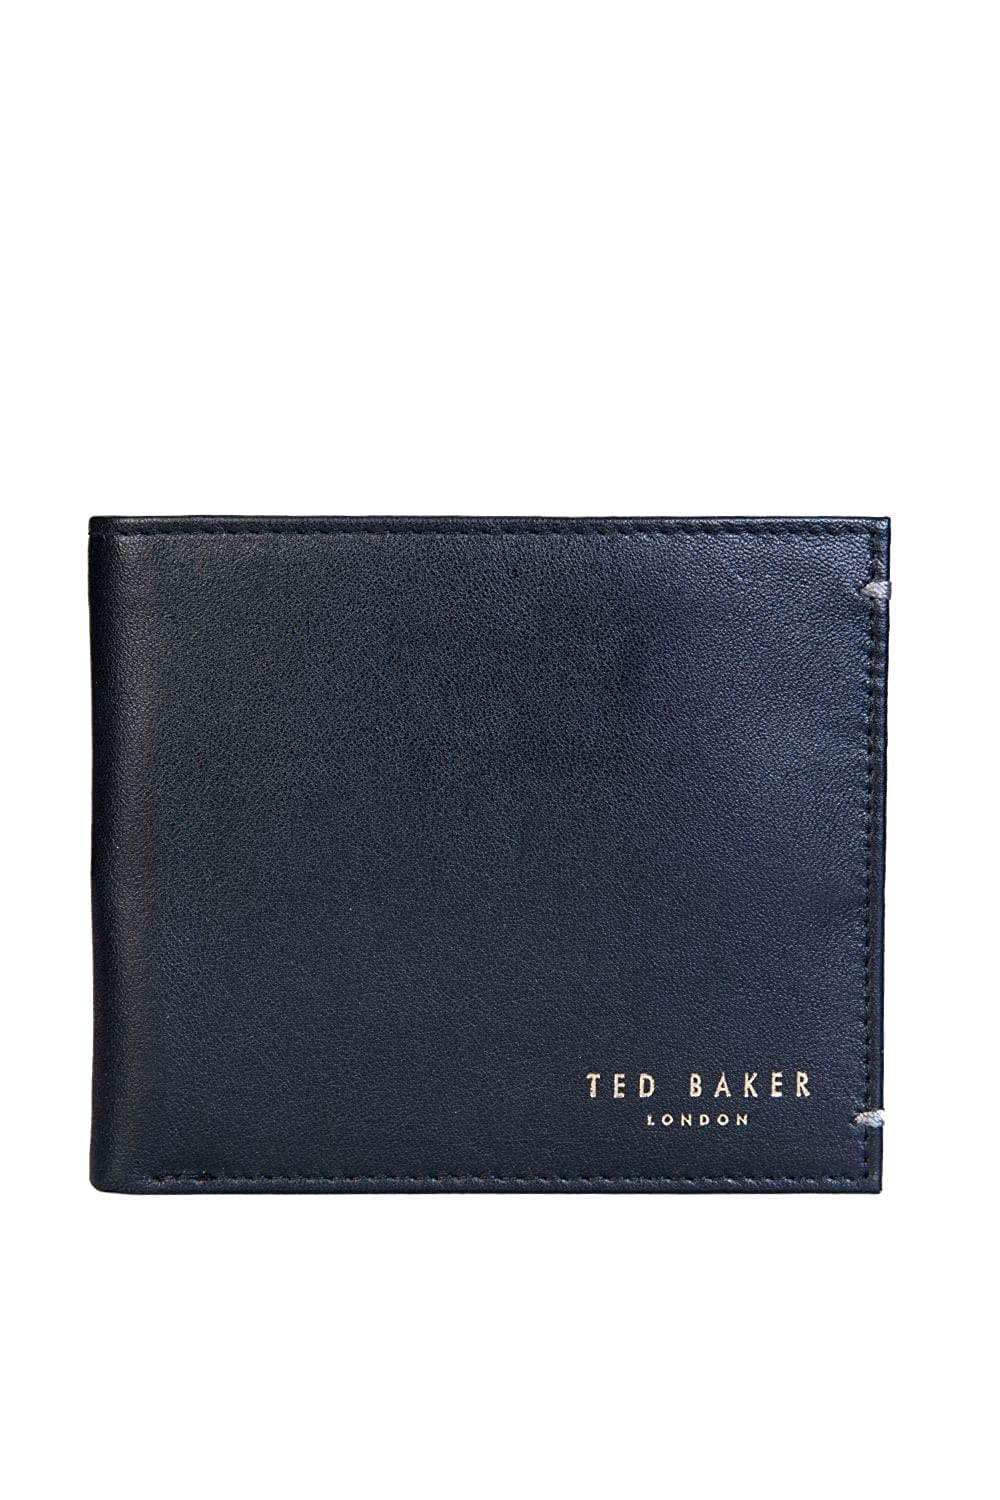 17f8938c05b72f Ted baker antonys bifold leather wallet black clothing jpg 1000x1500 Ted baker  wallets